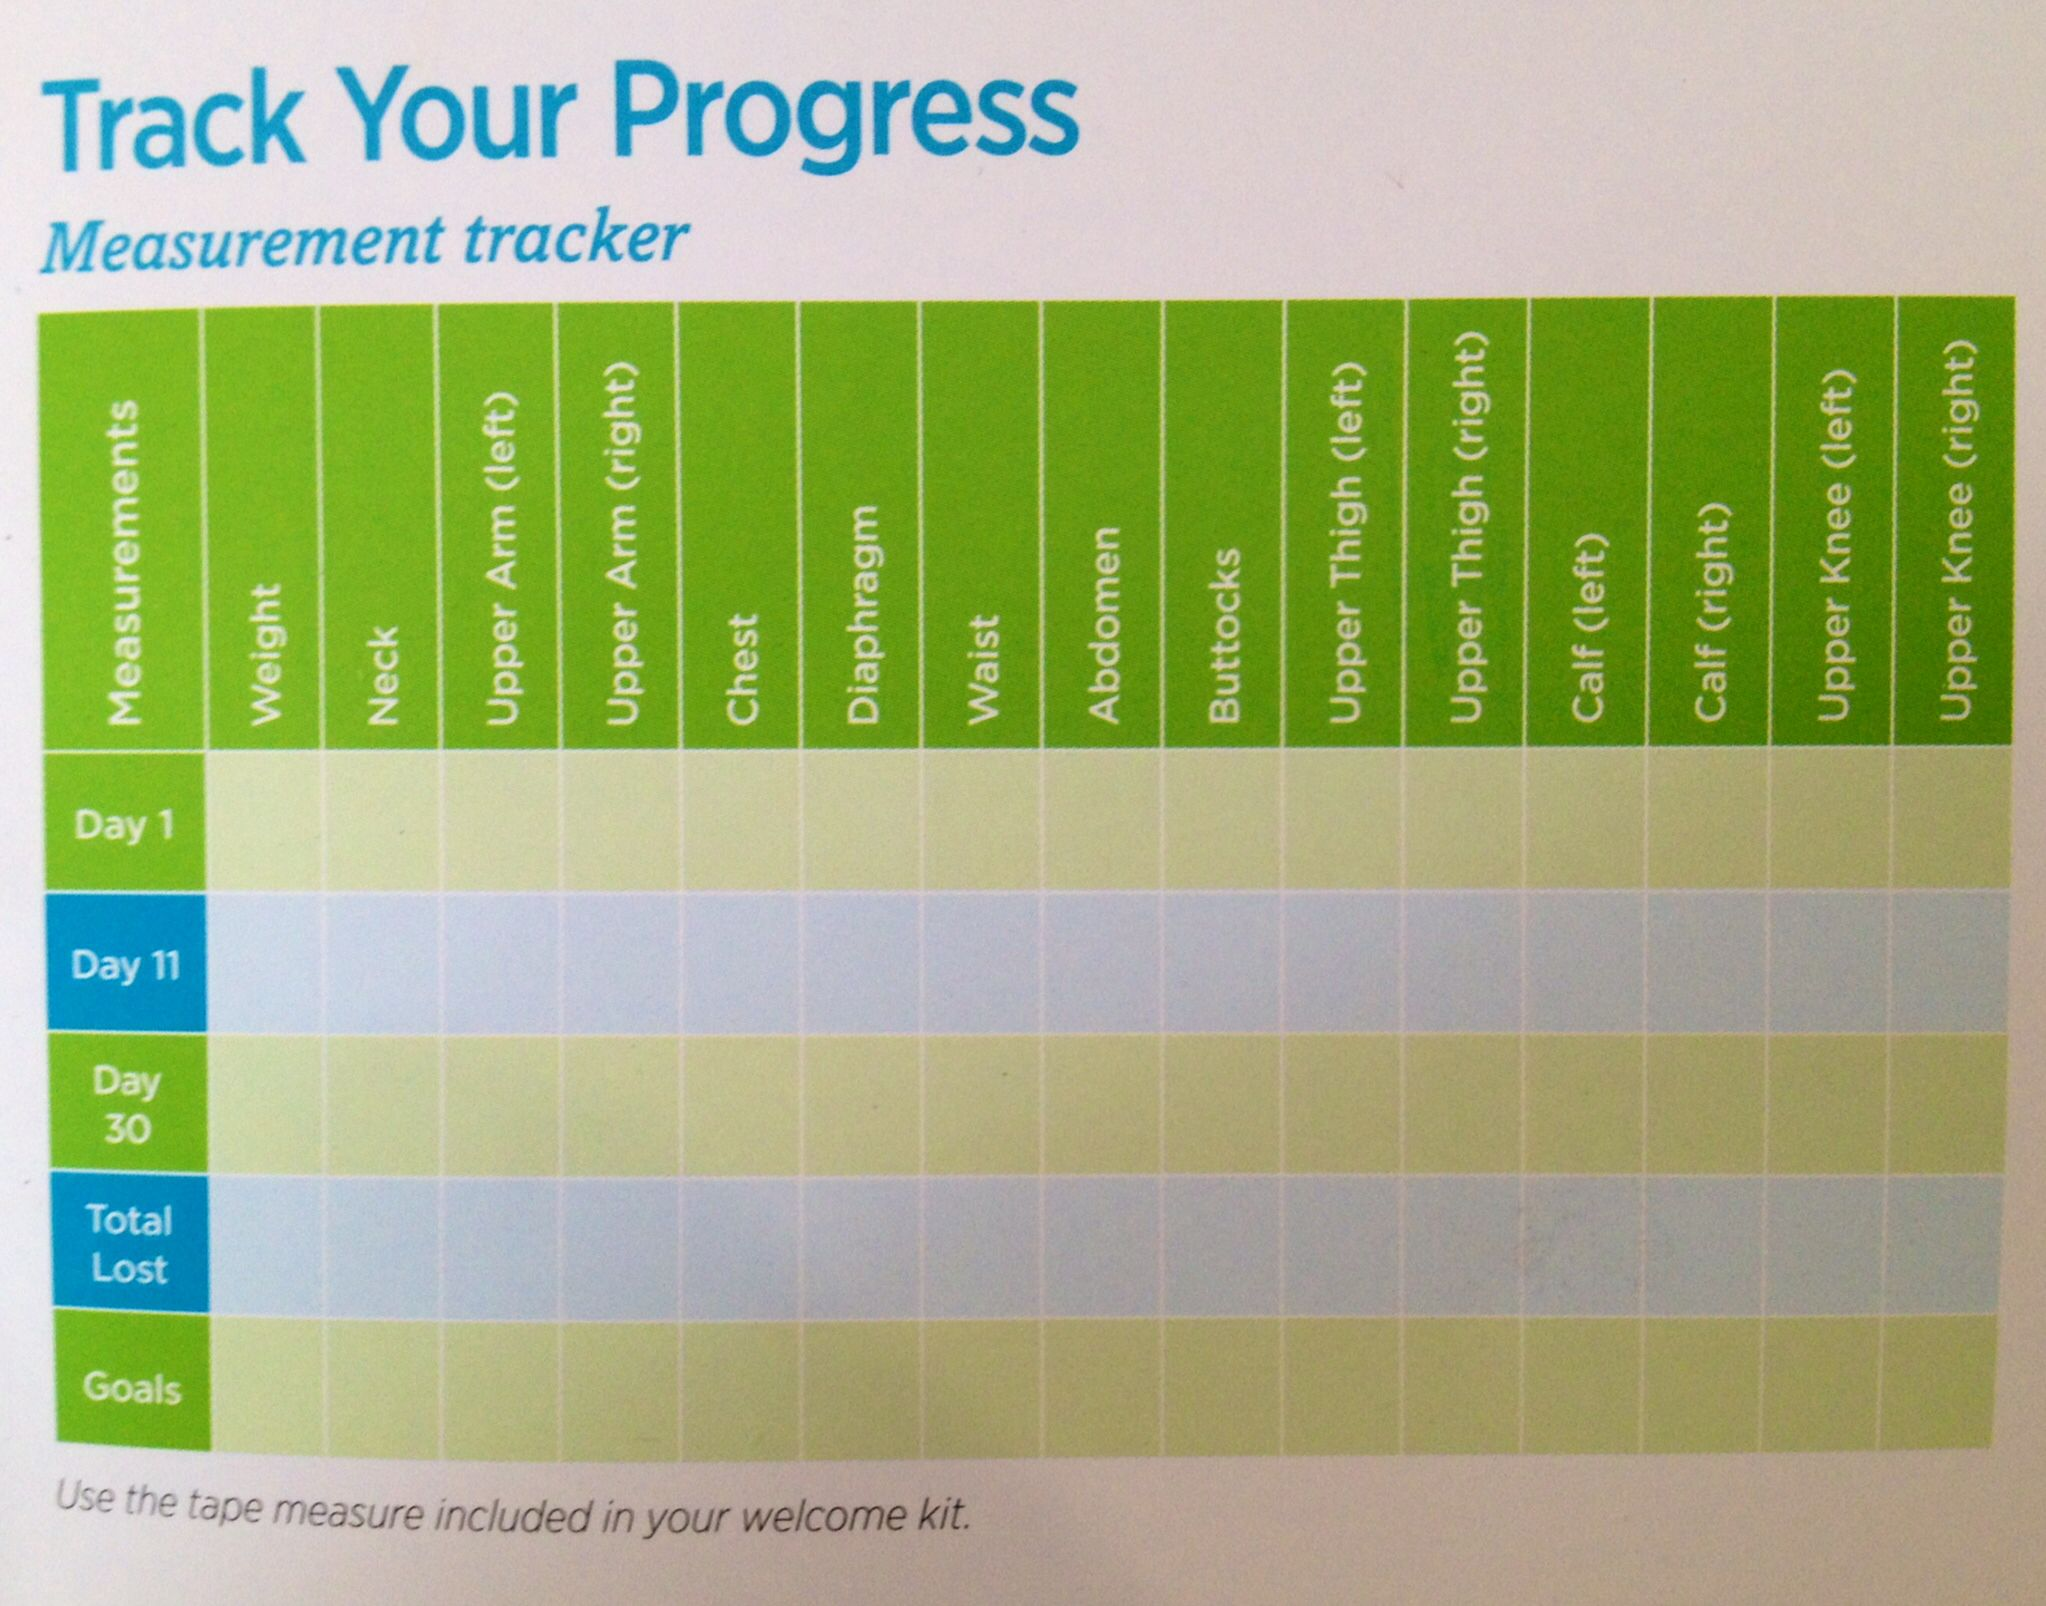 Track Your Progress Isagenix Helpful Hints Useful Tips Runway Trucks